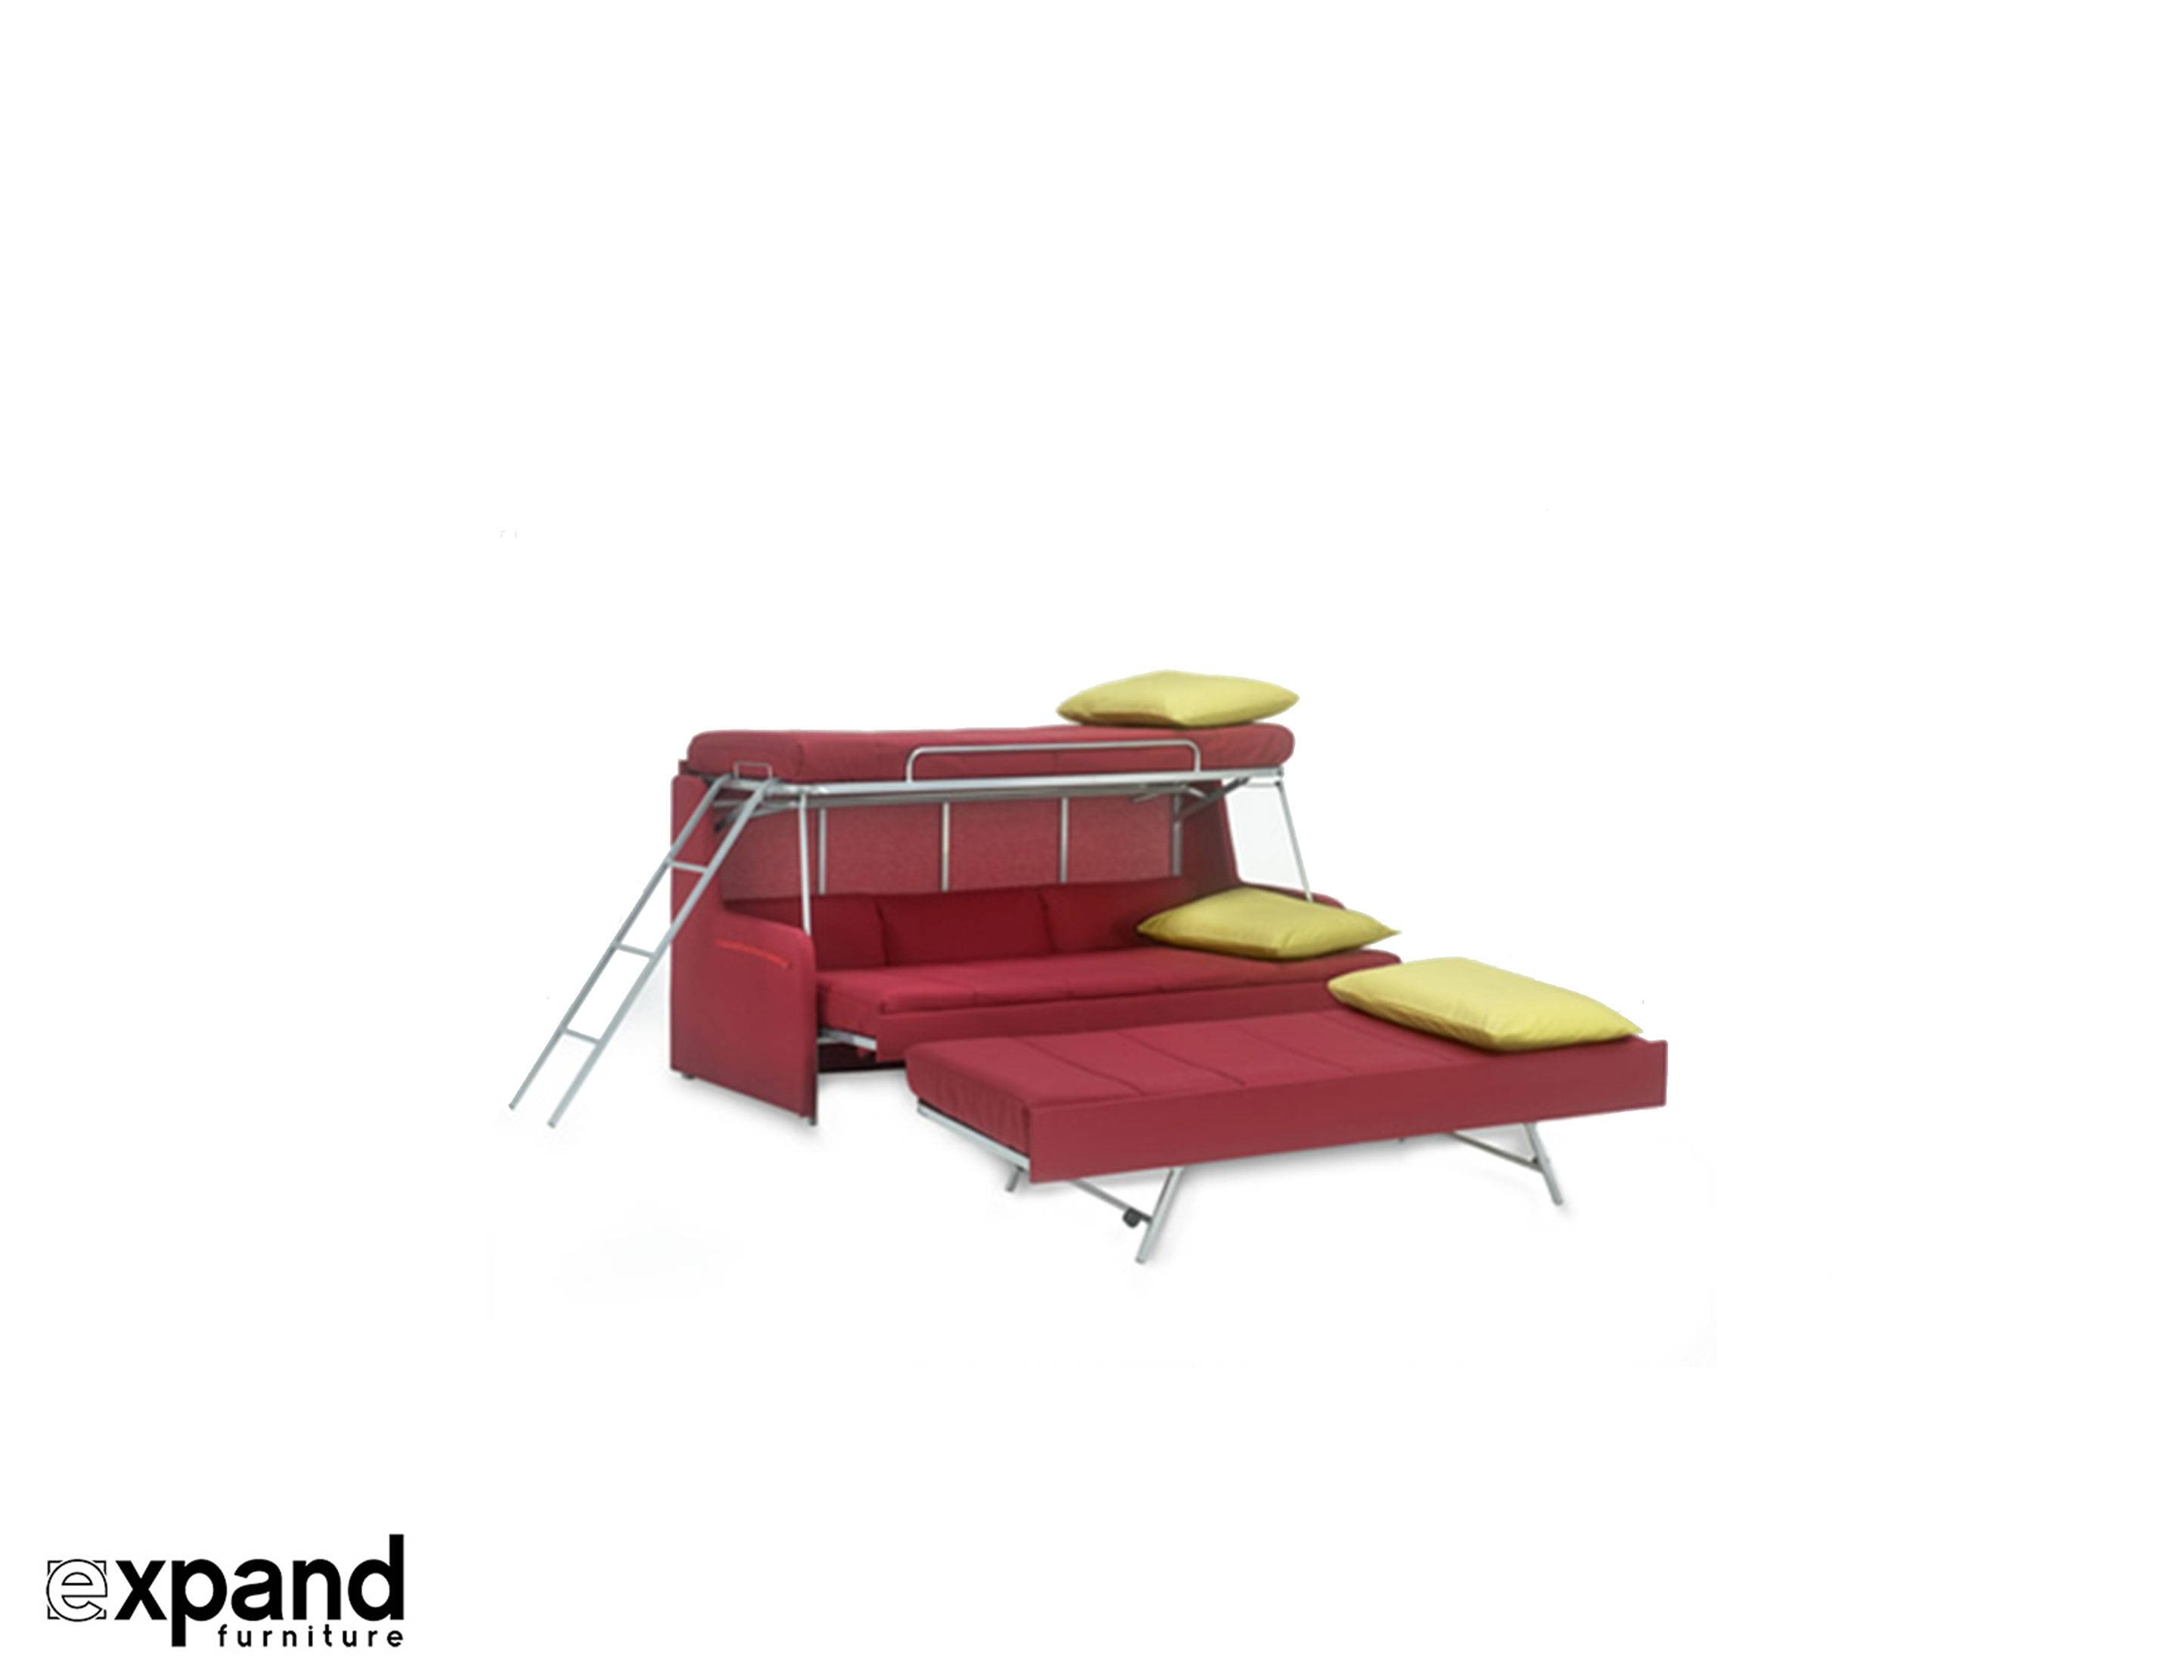 Transforming Sofa Bunk Bed | Expand Furniture throughout Sofas Converts to Bunk Bed (Image 15 of 15)